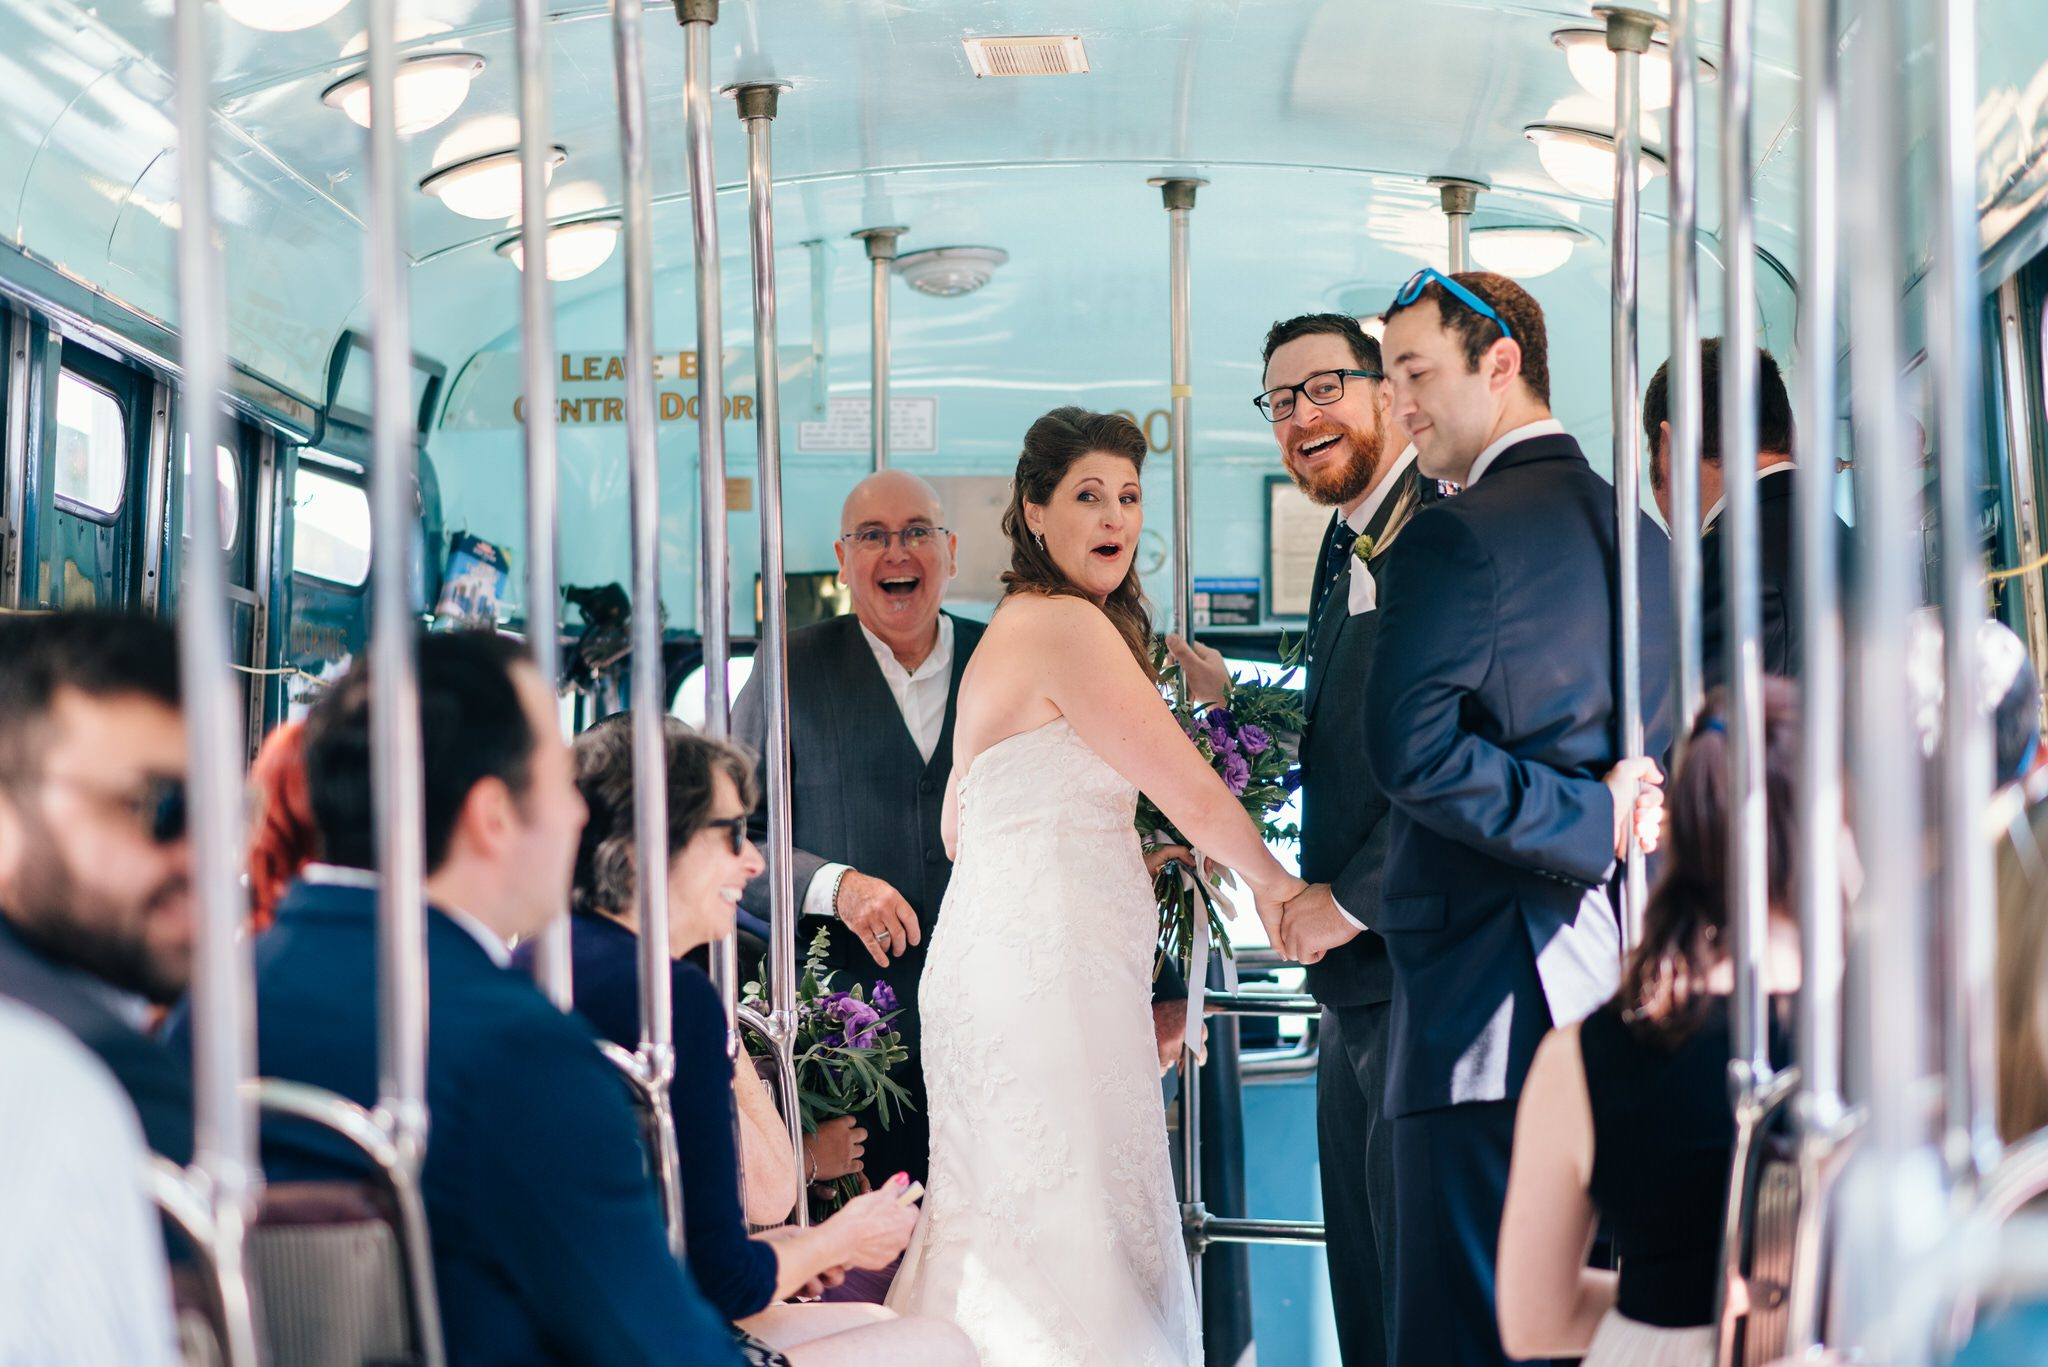 Everyone laughs during this Vintage Toronto Streetcar Wedding Ceremony